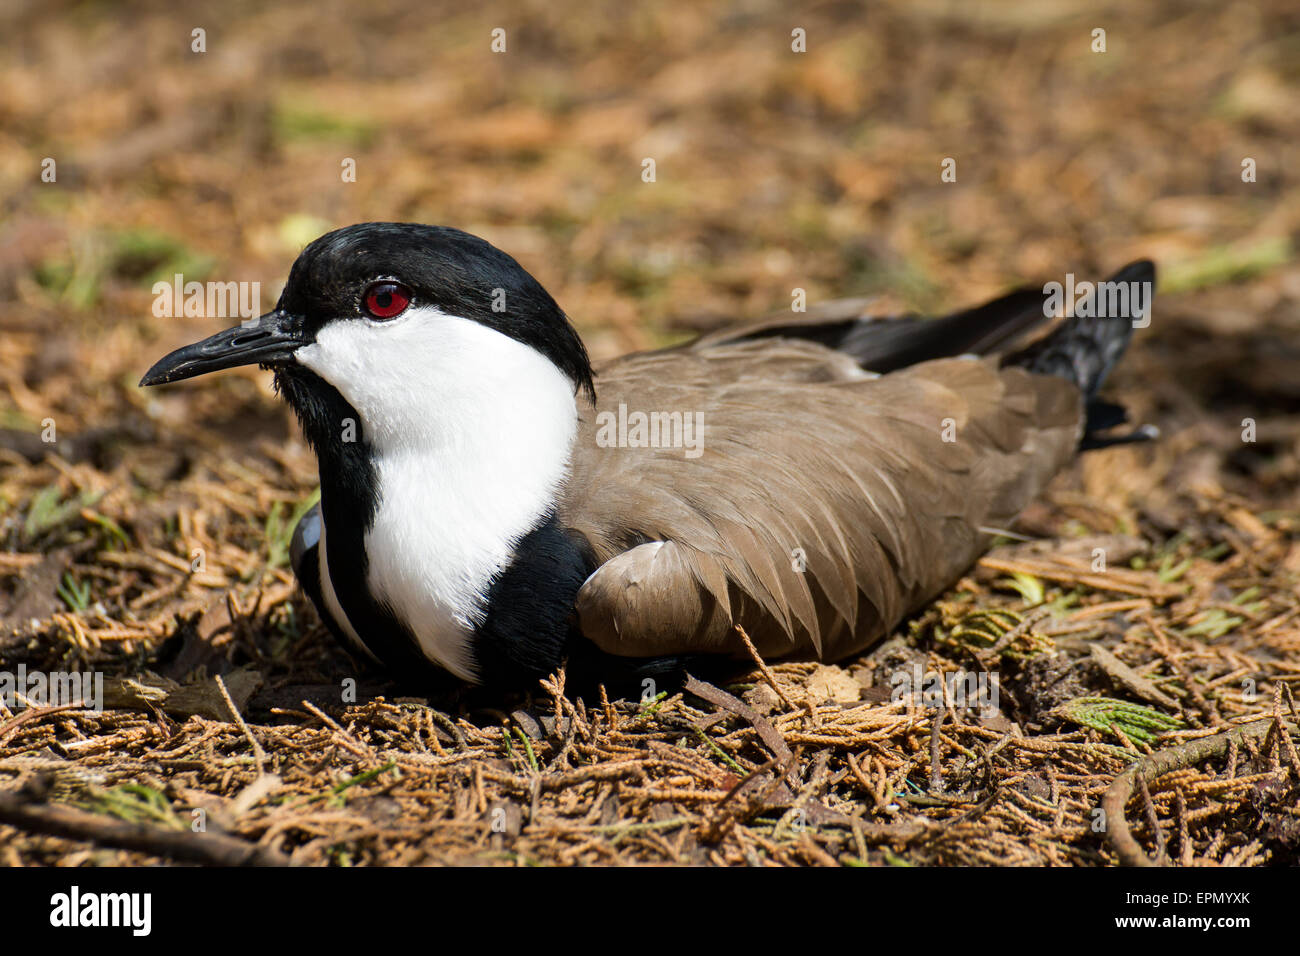 A Spur-winged lapwing relaxing in the underbrush. - Stock Image